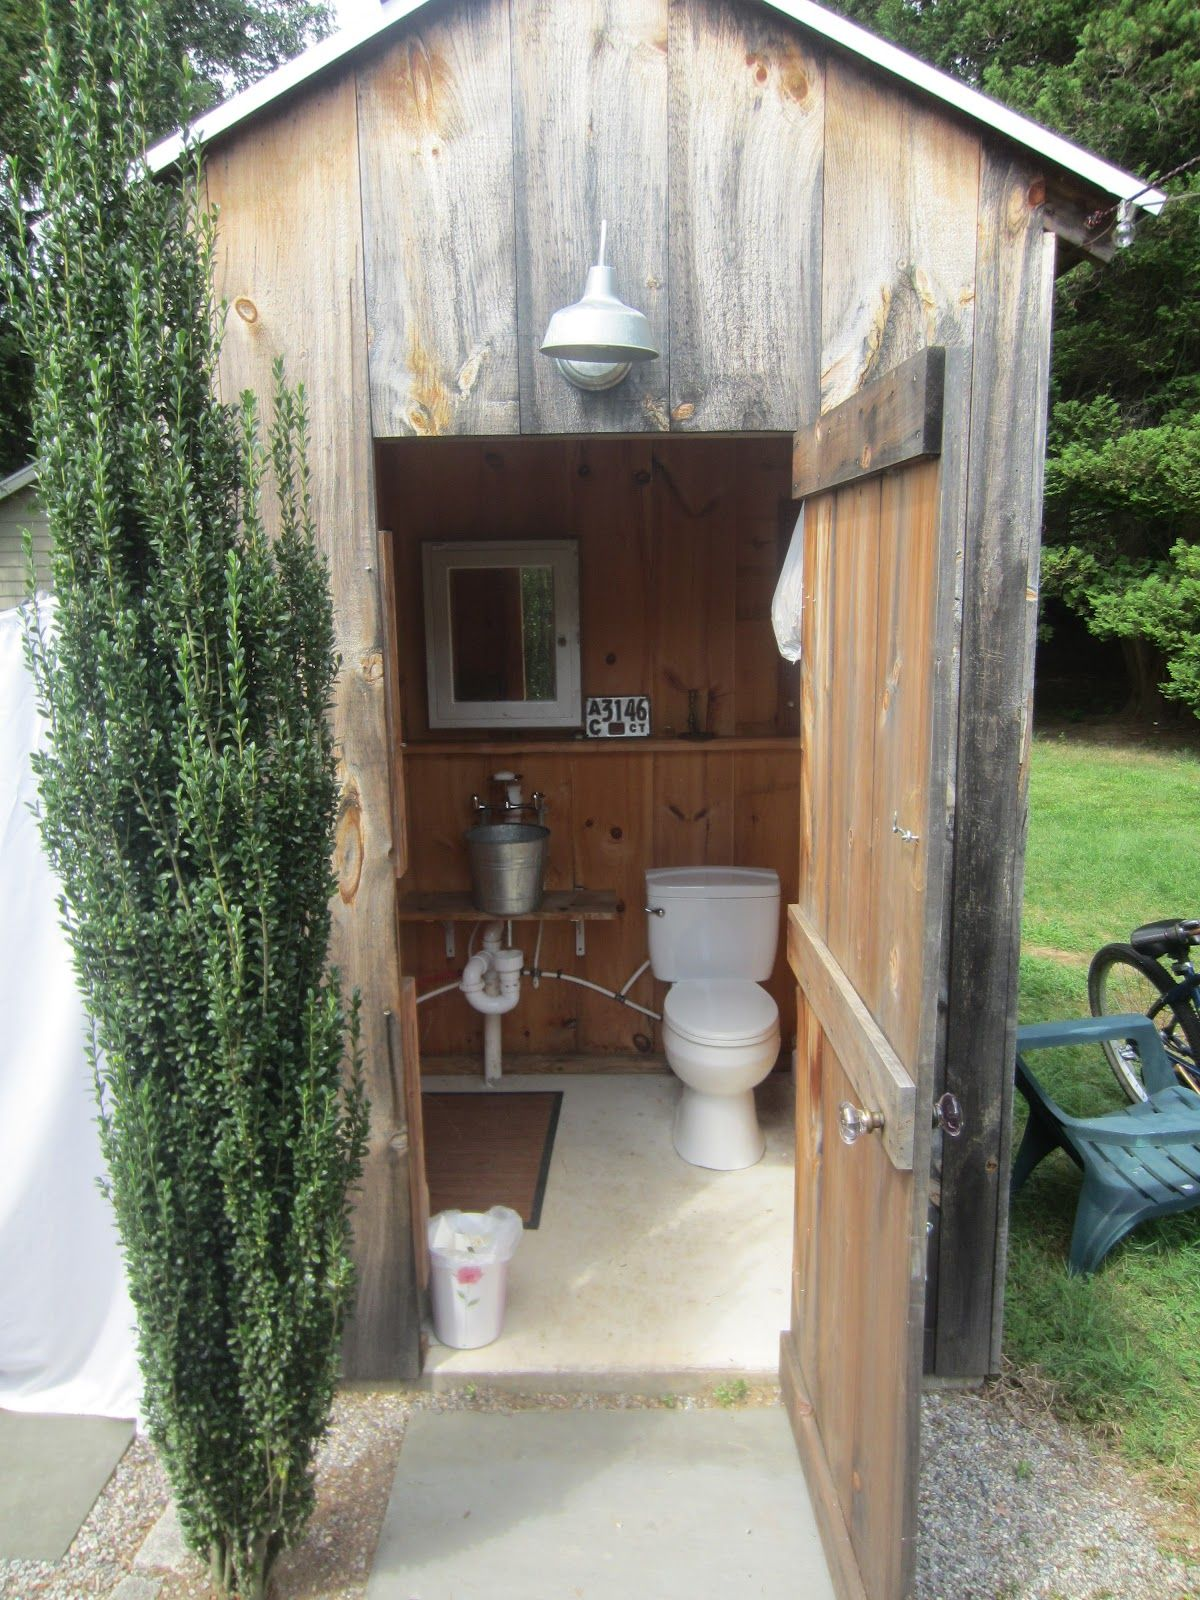 Building a toilet for a wooden house